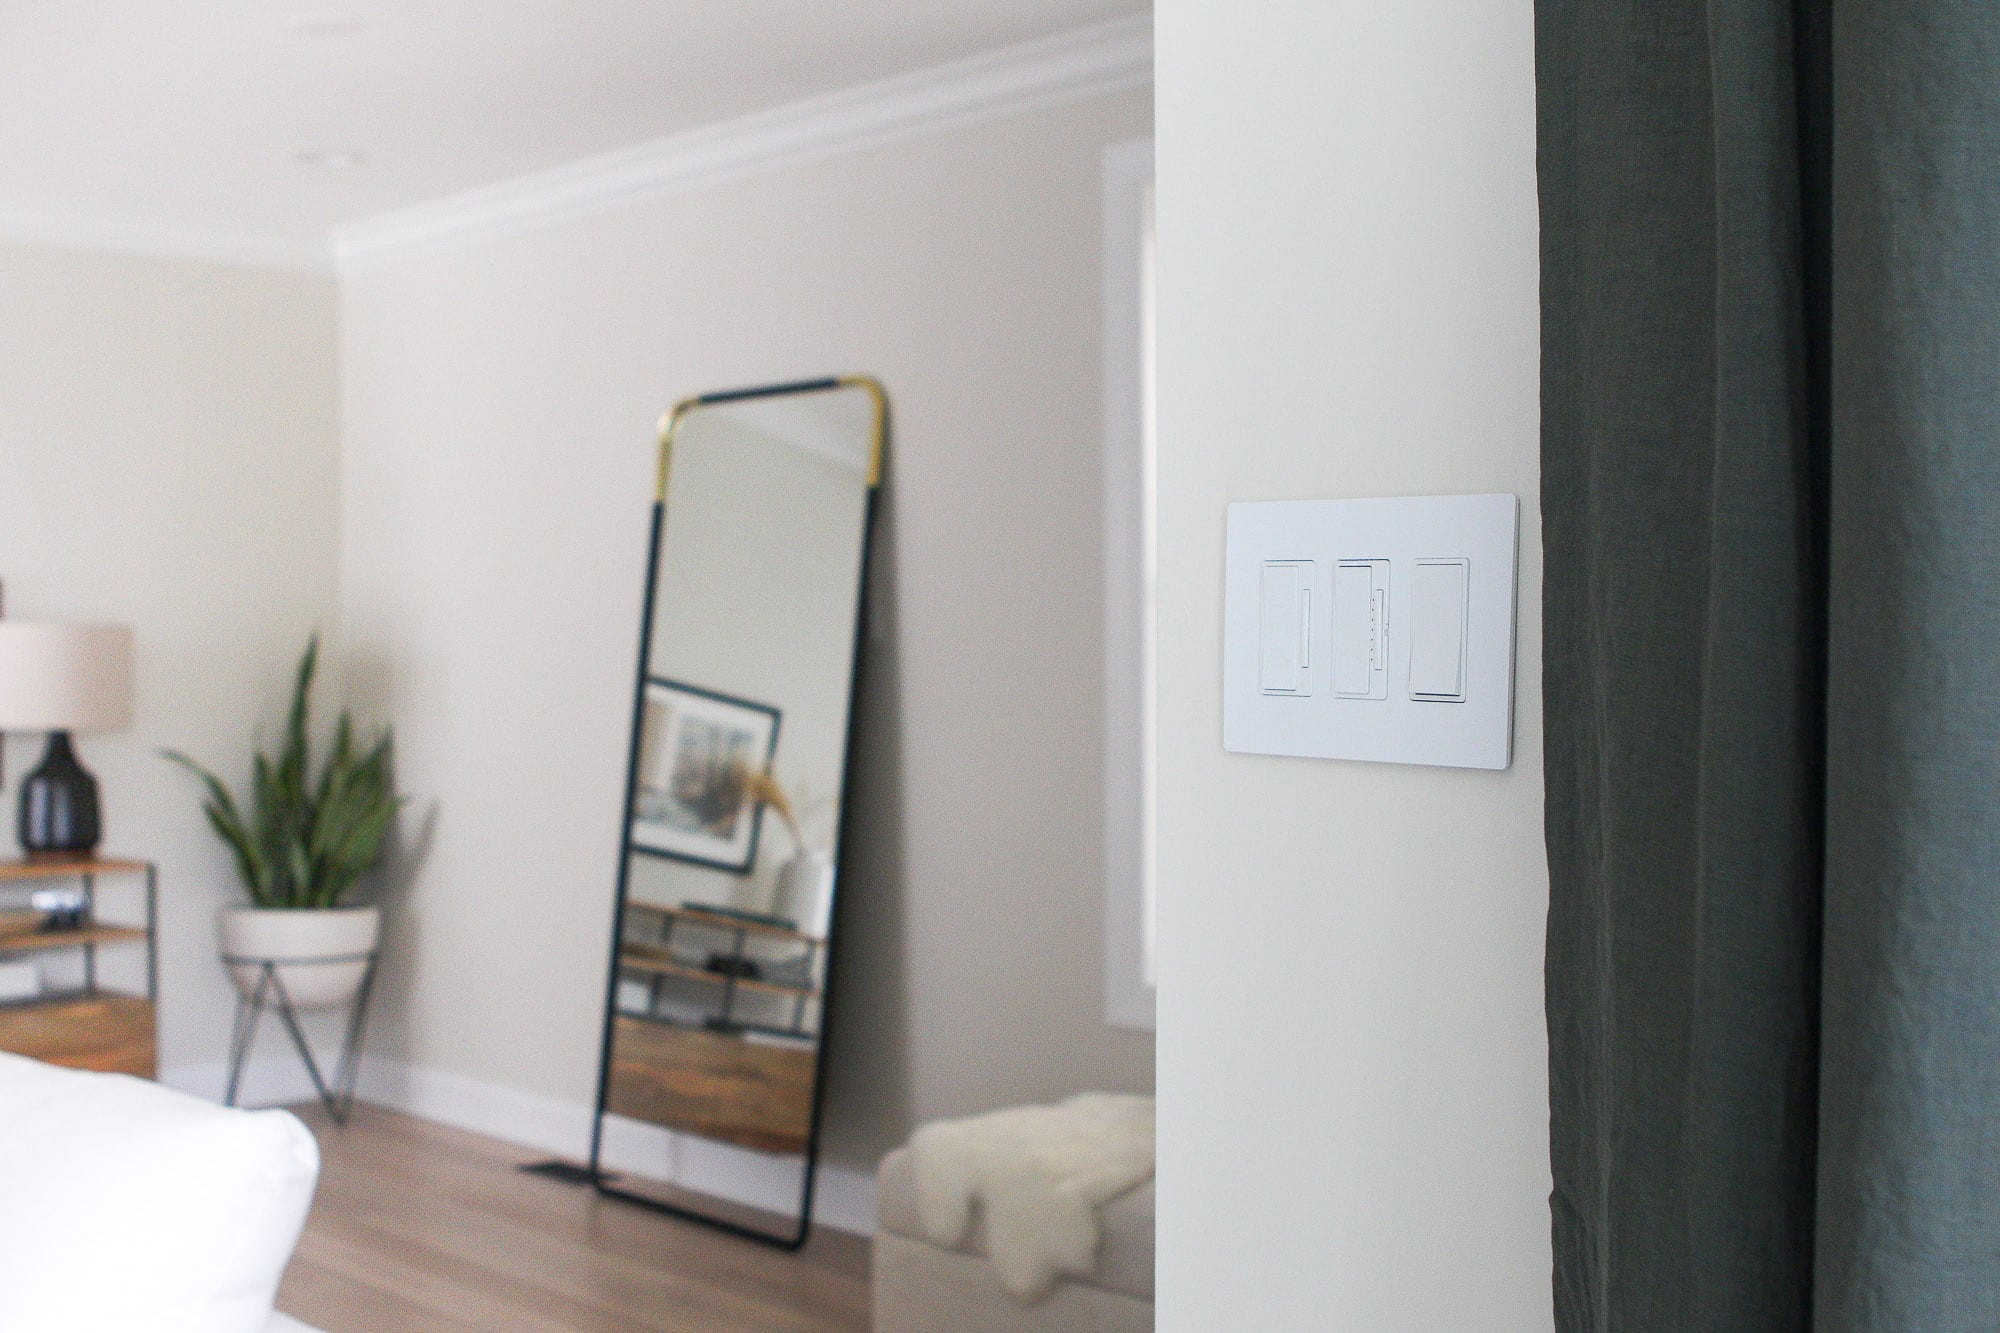 Smart dimmer switches from Legrand